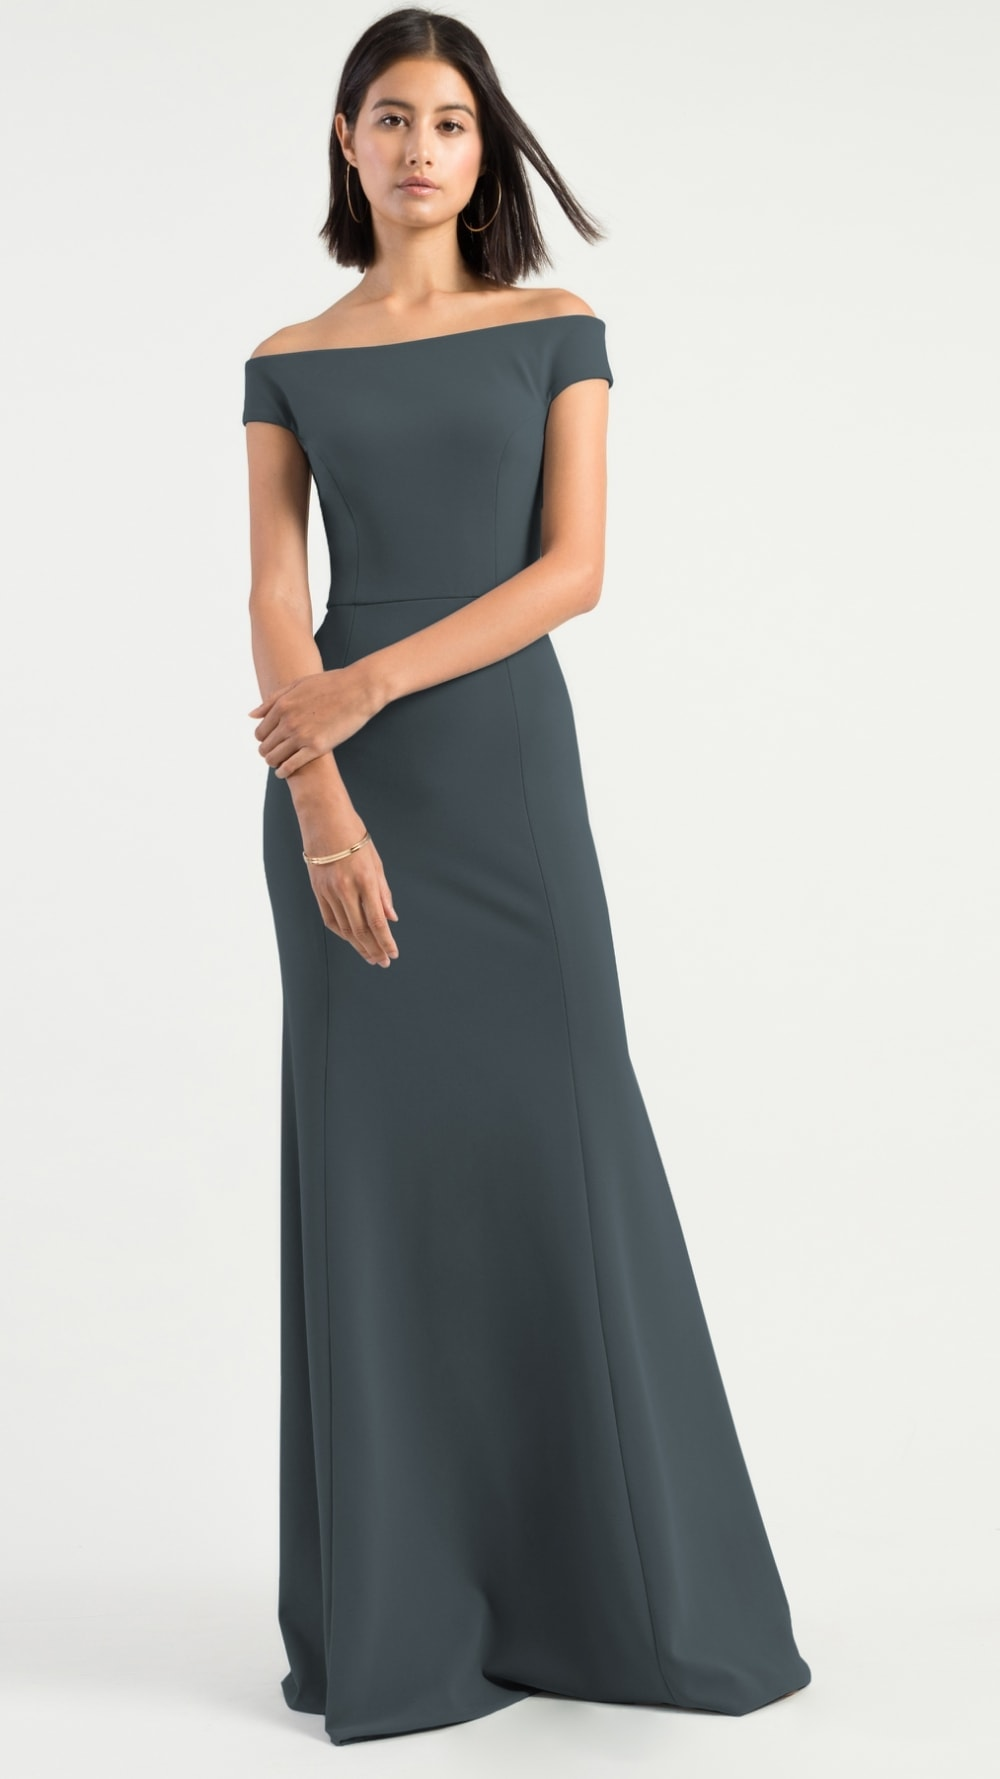 Jenny Yoo Bridesmaid Dresses Spring 2019 Dress For The